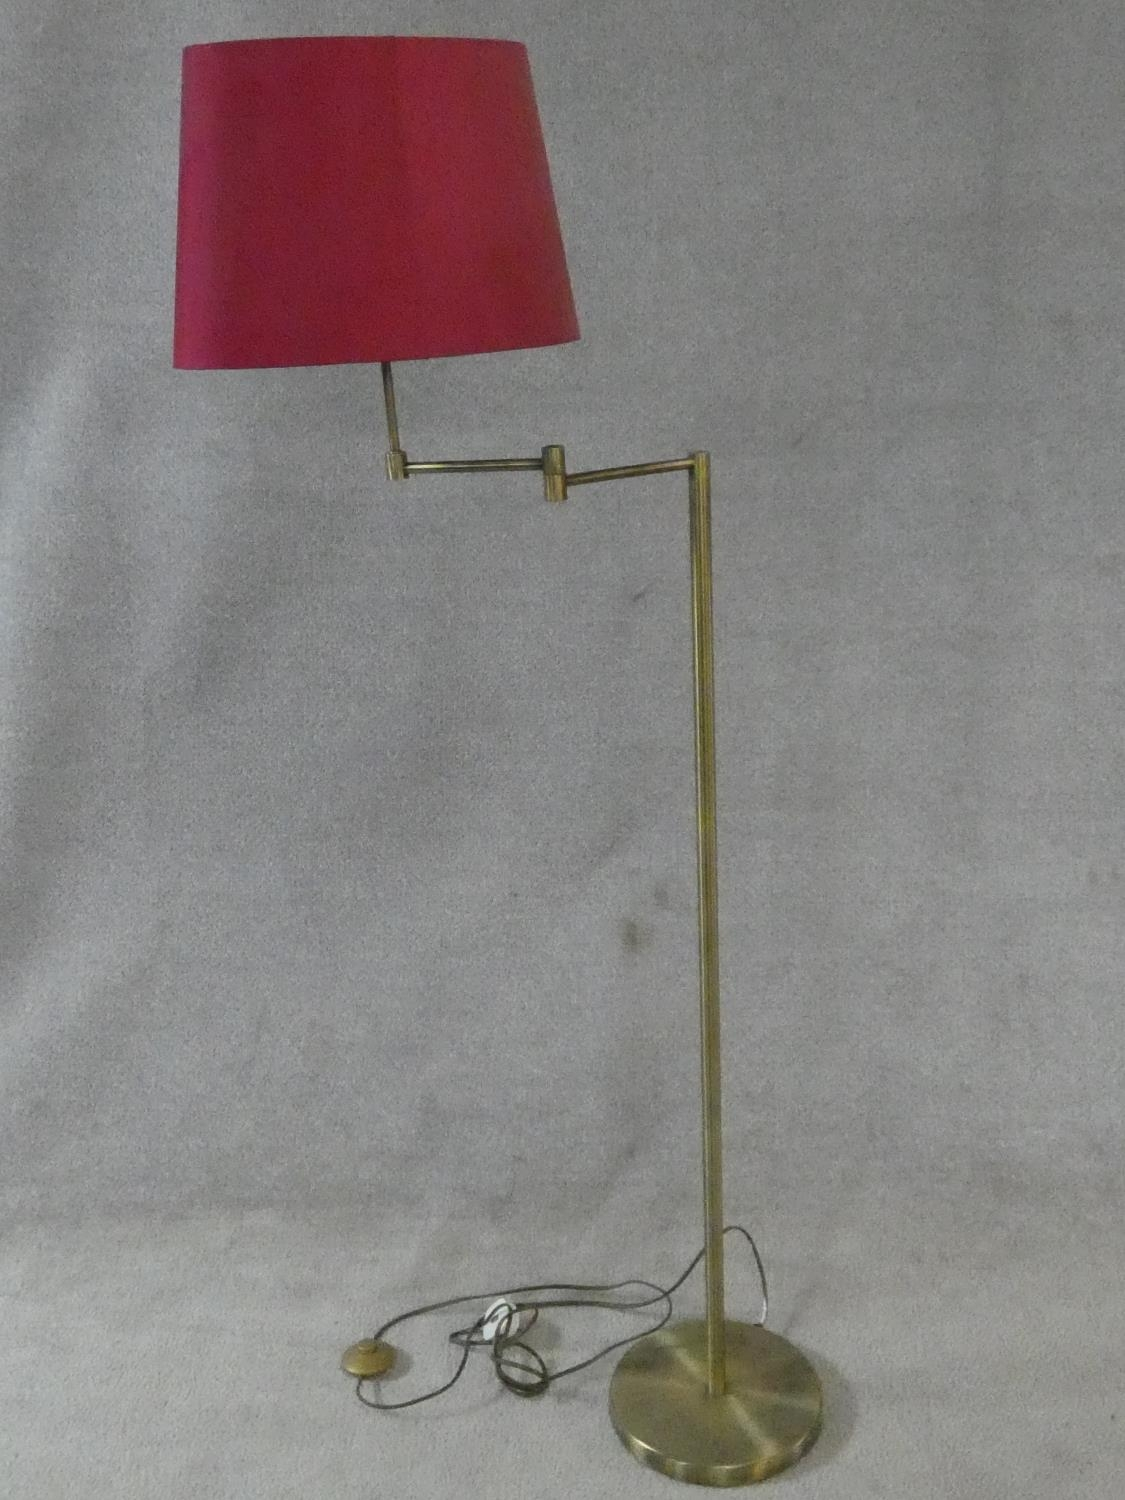 Two brass standard lamps with articulated actions and a chrome adjustable standard lamp. H.162cm - Image 2 of 16